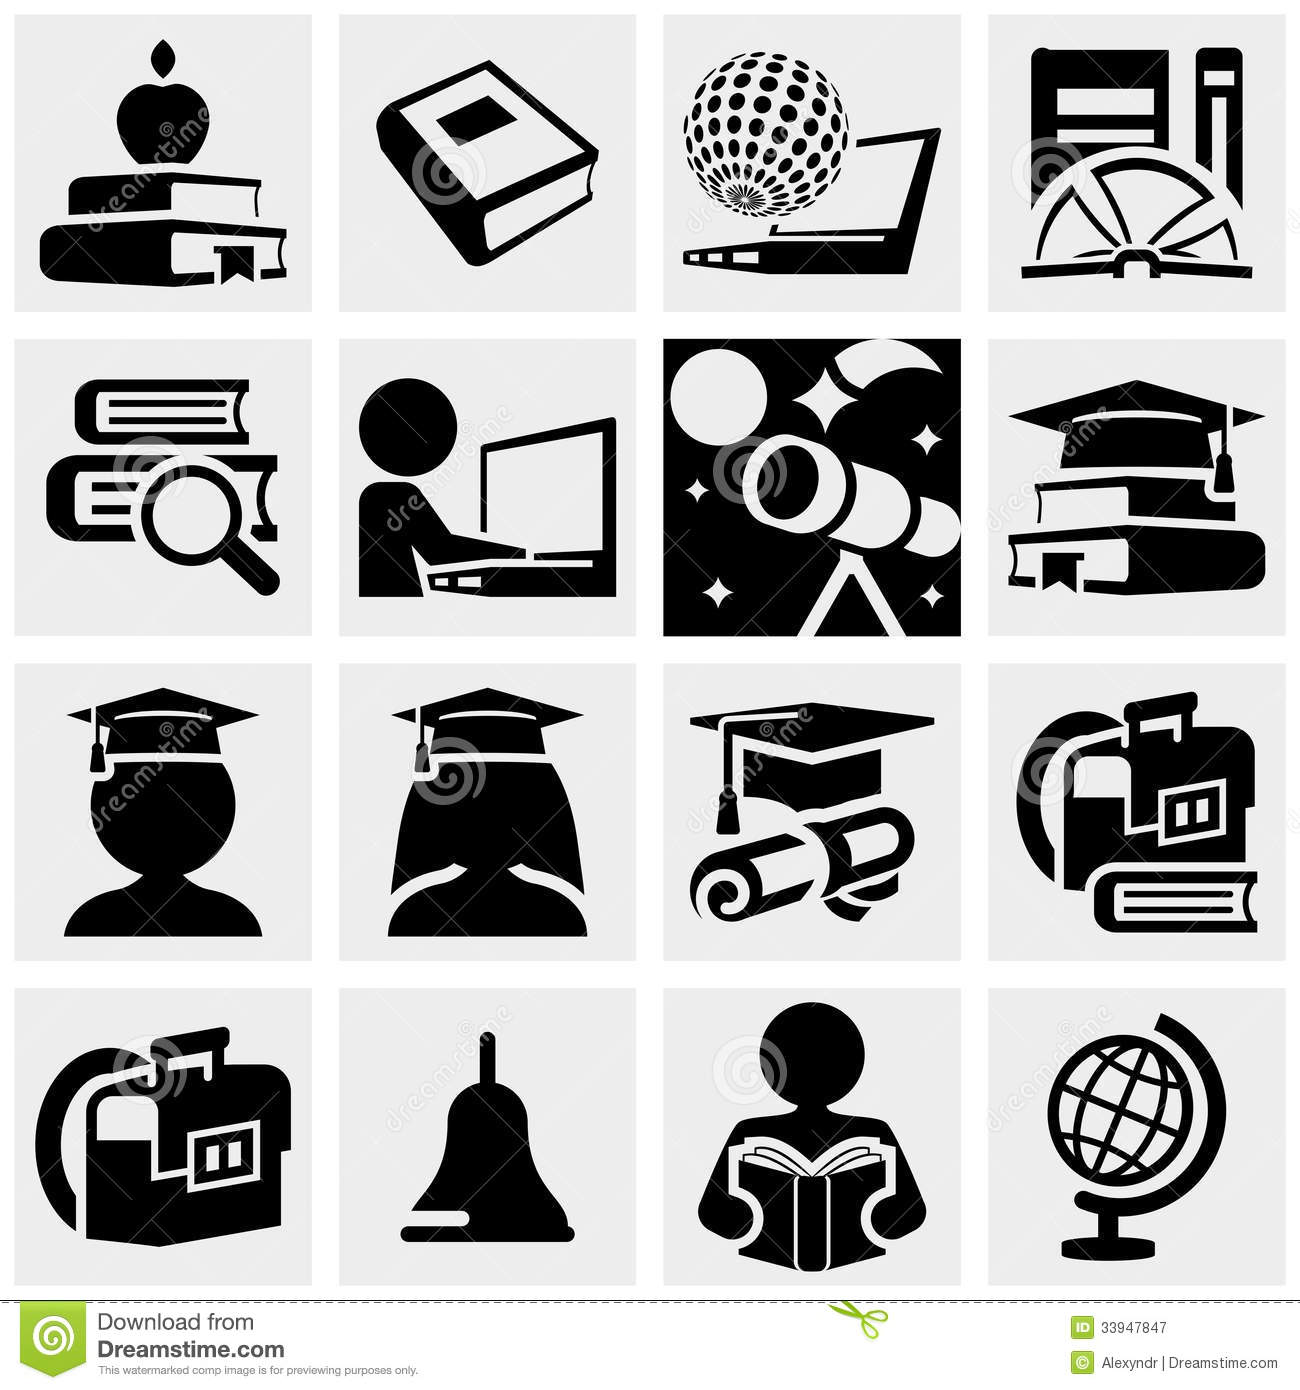 Education Stock Photos, Royalty-Free Images & Vectors - Shutterstock